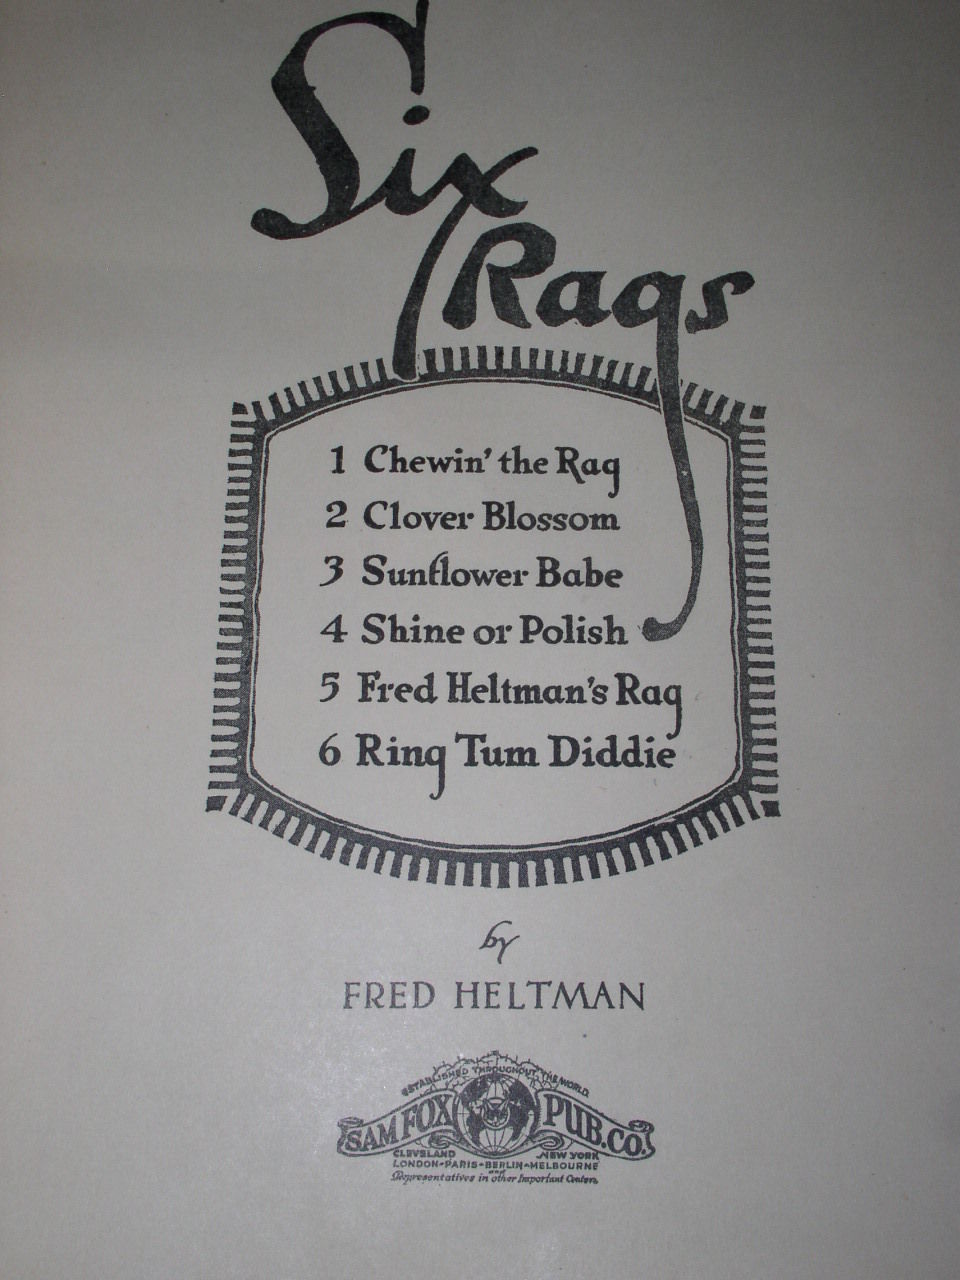 Fred Heltman Six Rags Ragtime Vintage Song Book 1925